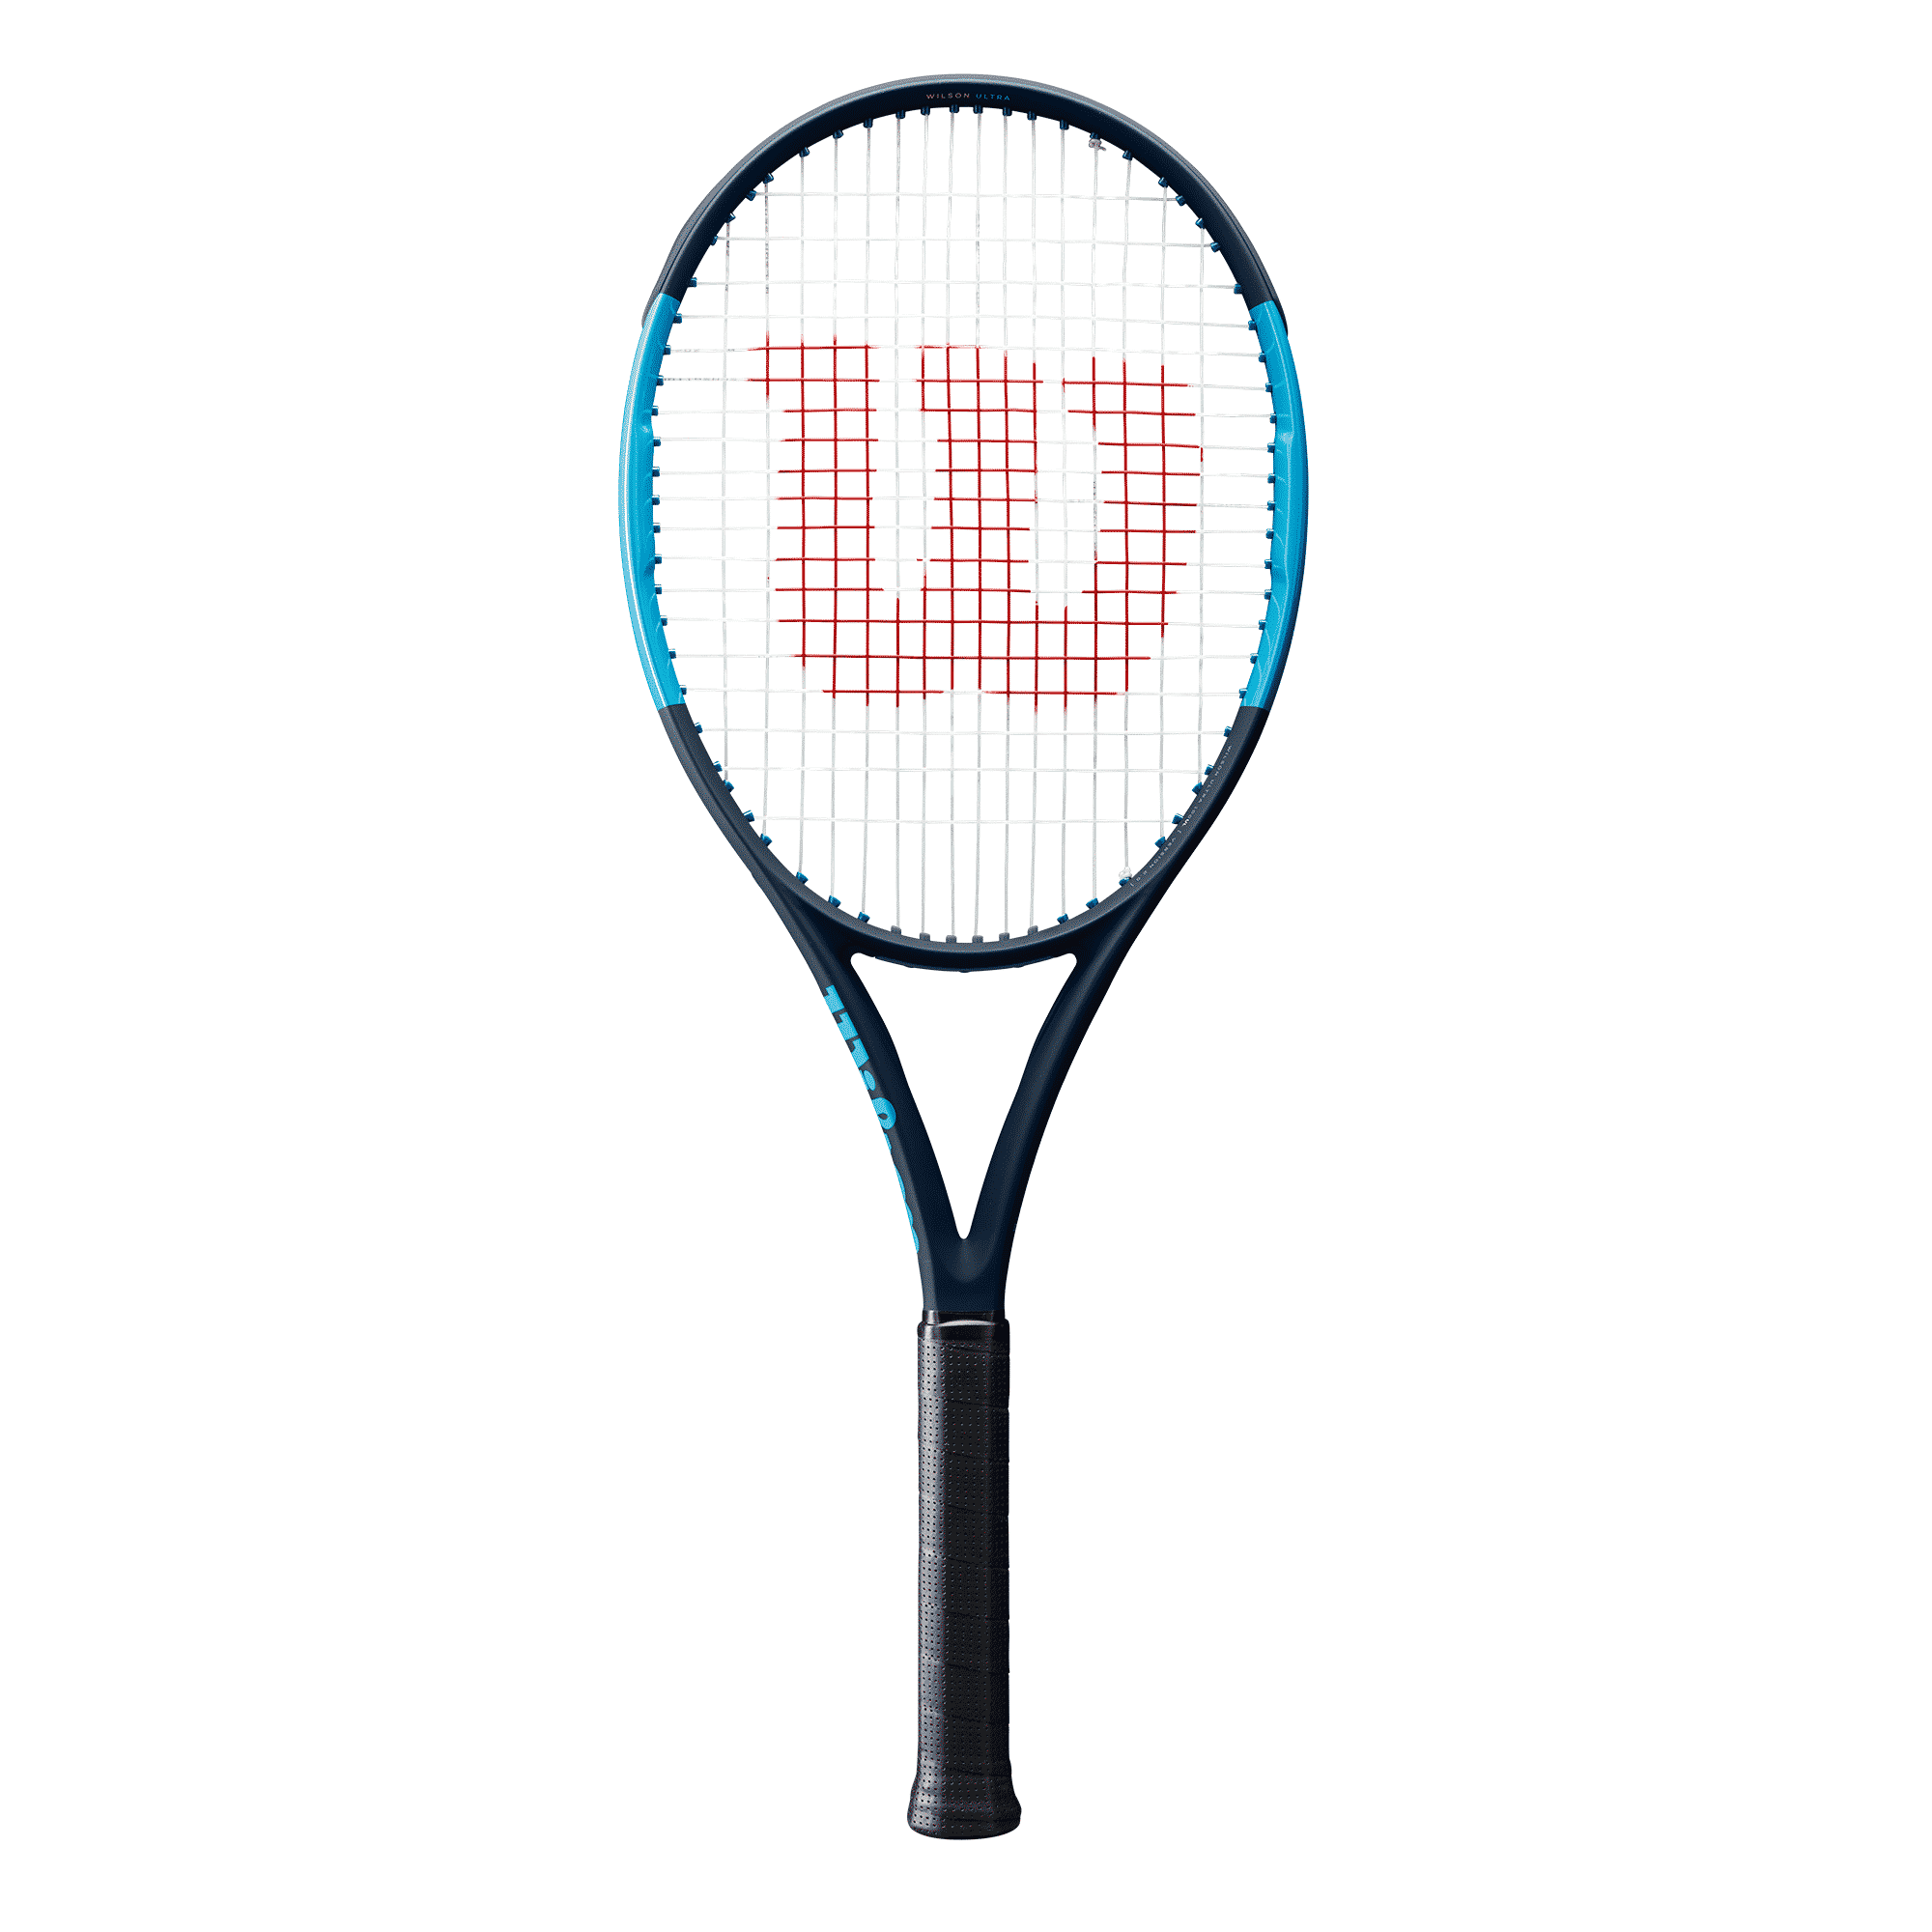 2017 Wilson Ultra Tennis Racquet Collection - Now with CounterVail!